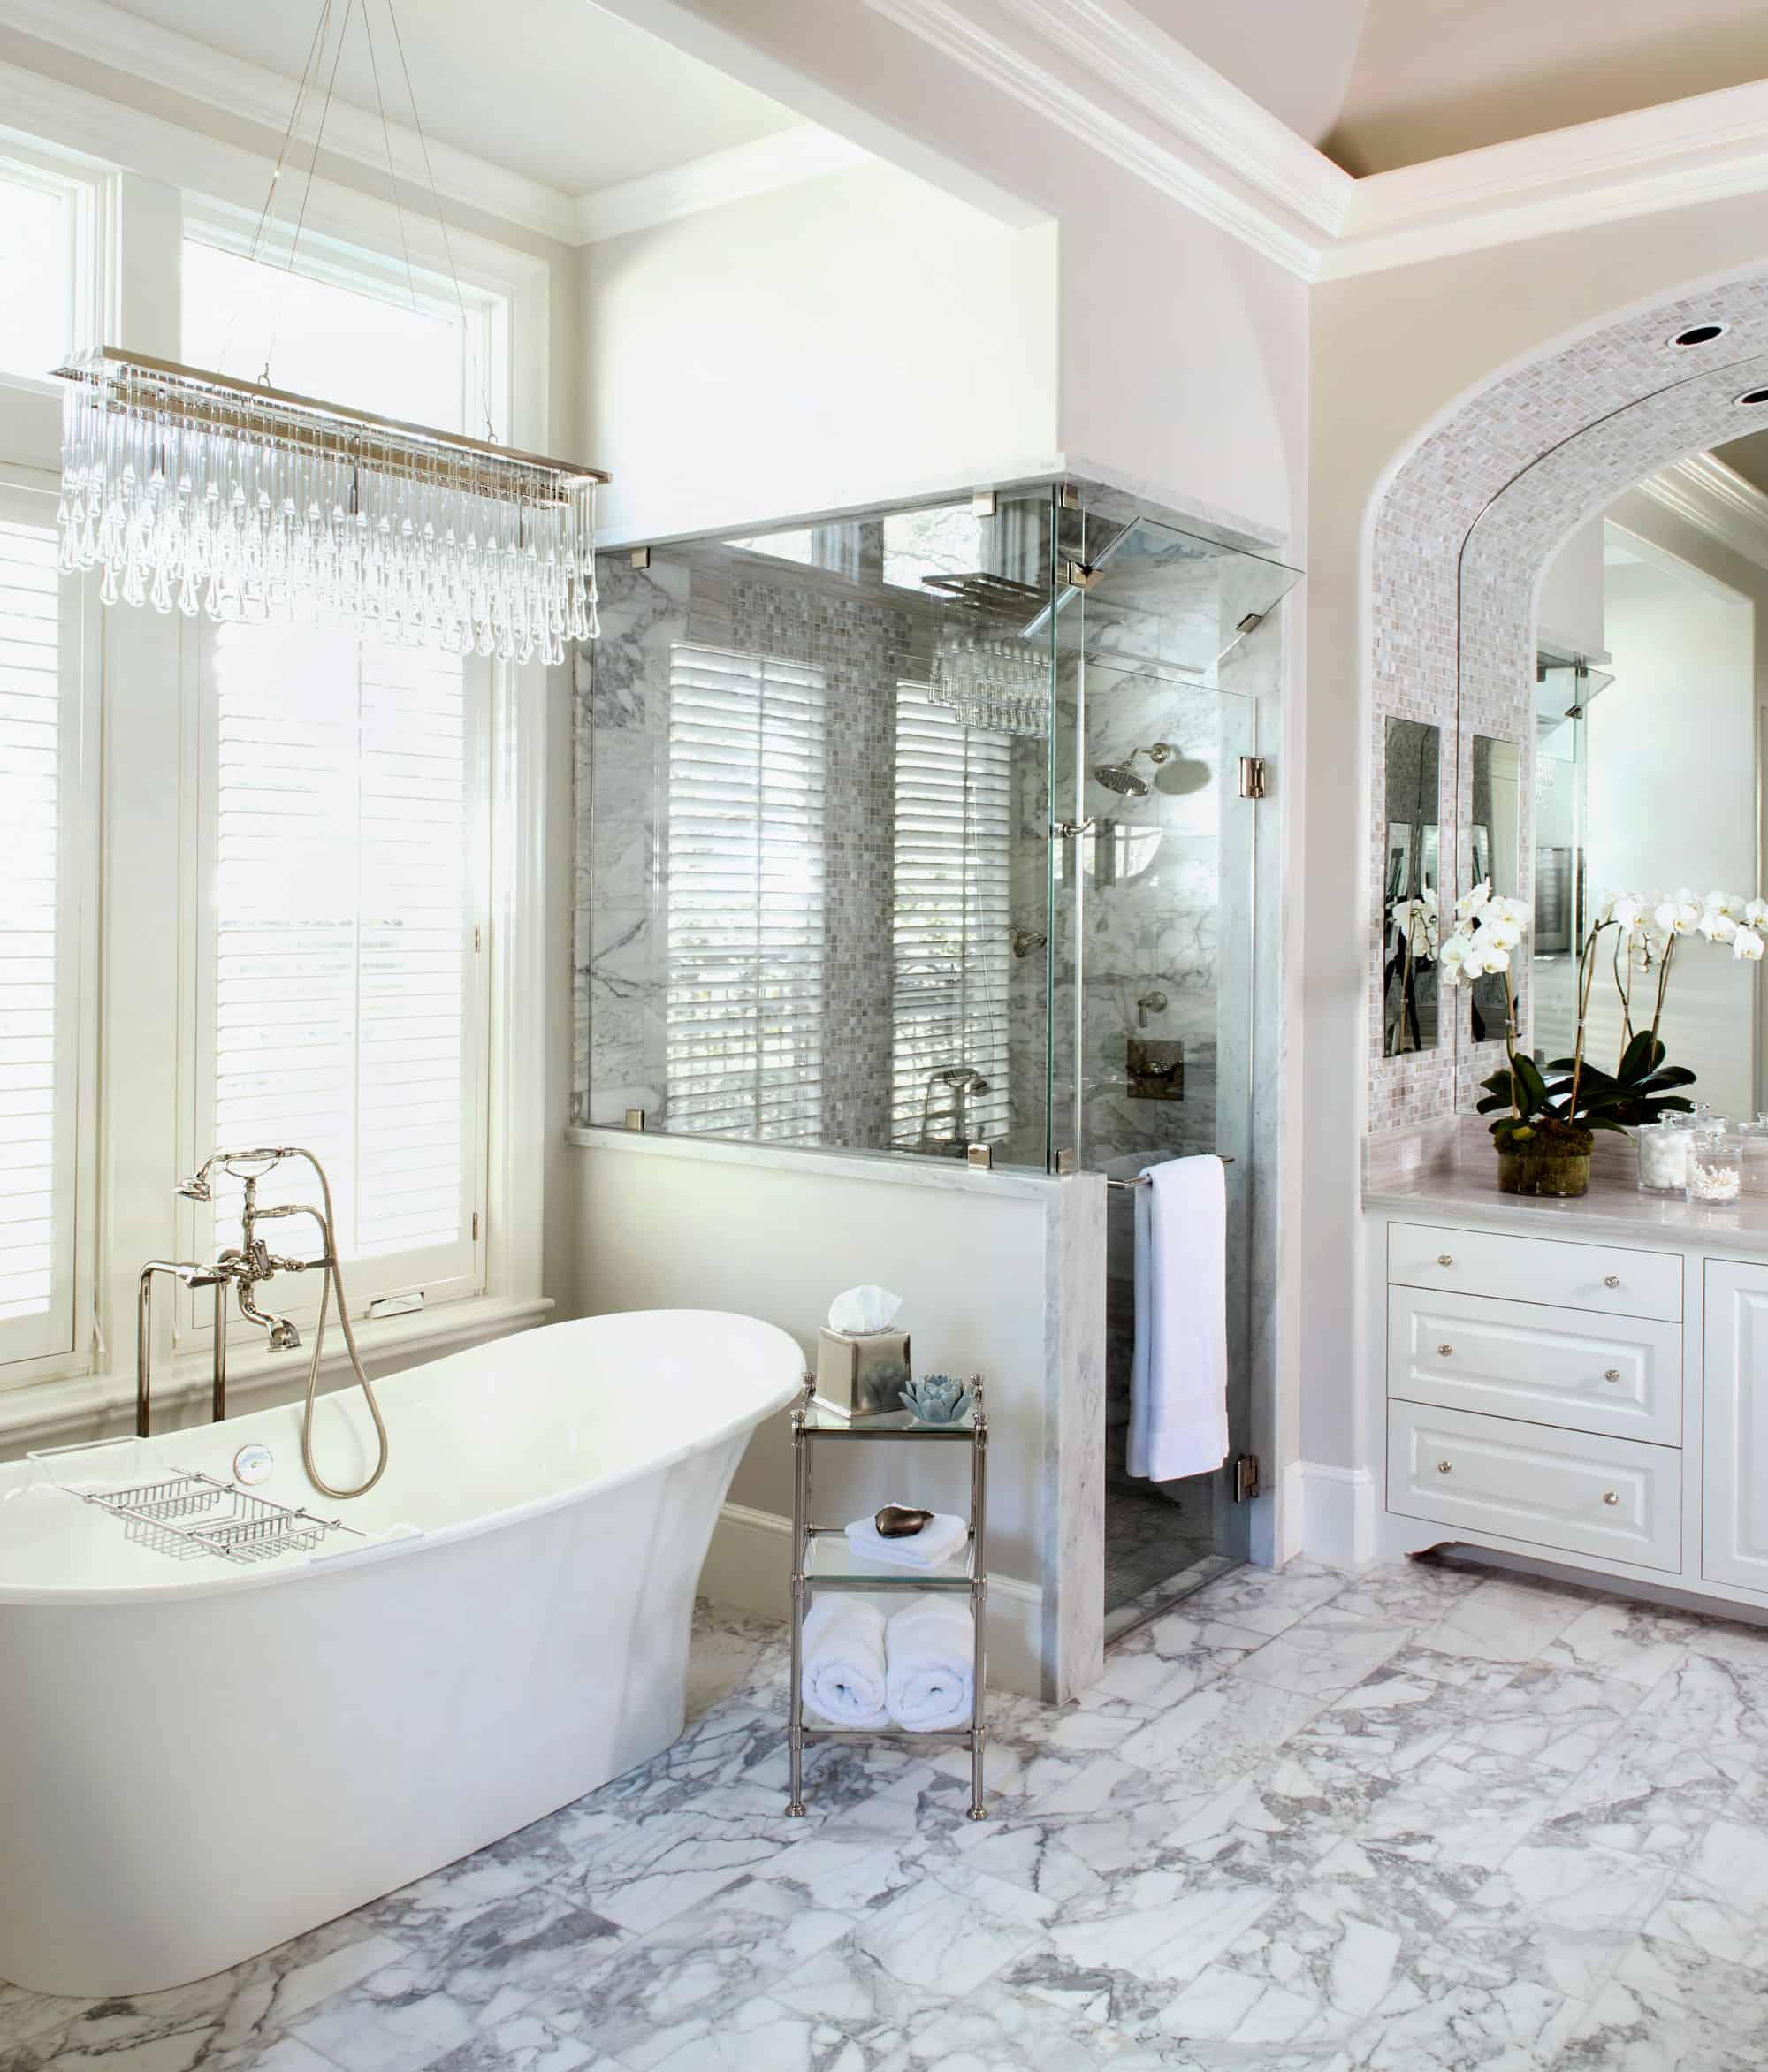 White Bathroom Designs That Will Inspire Your Next Renovations on White Bathroom Design Ideas  id=53822